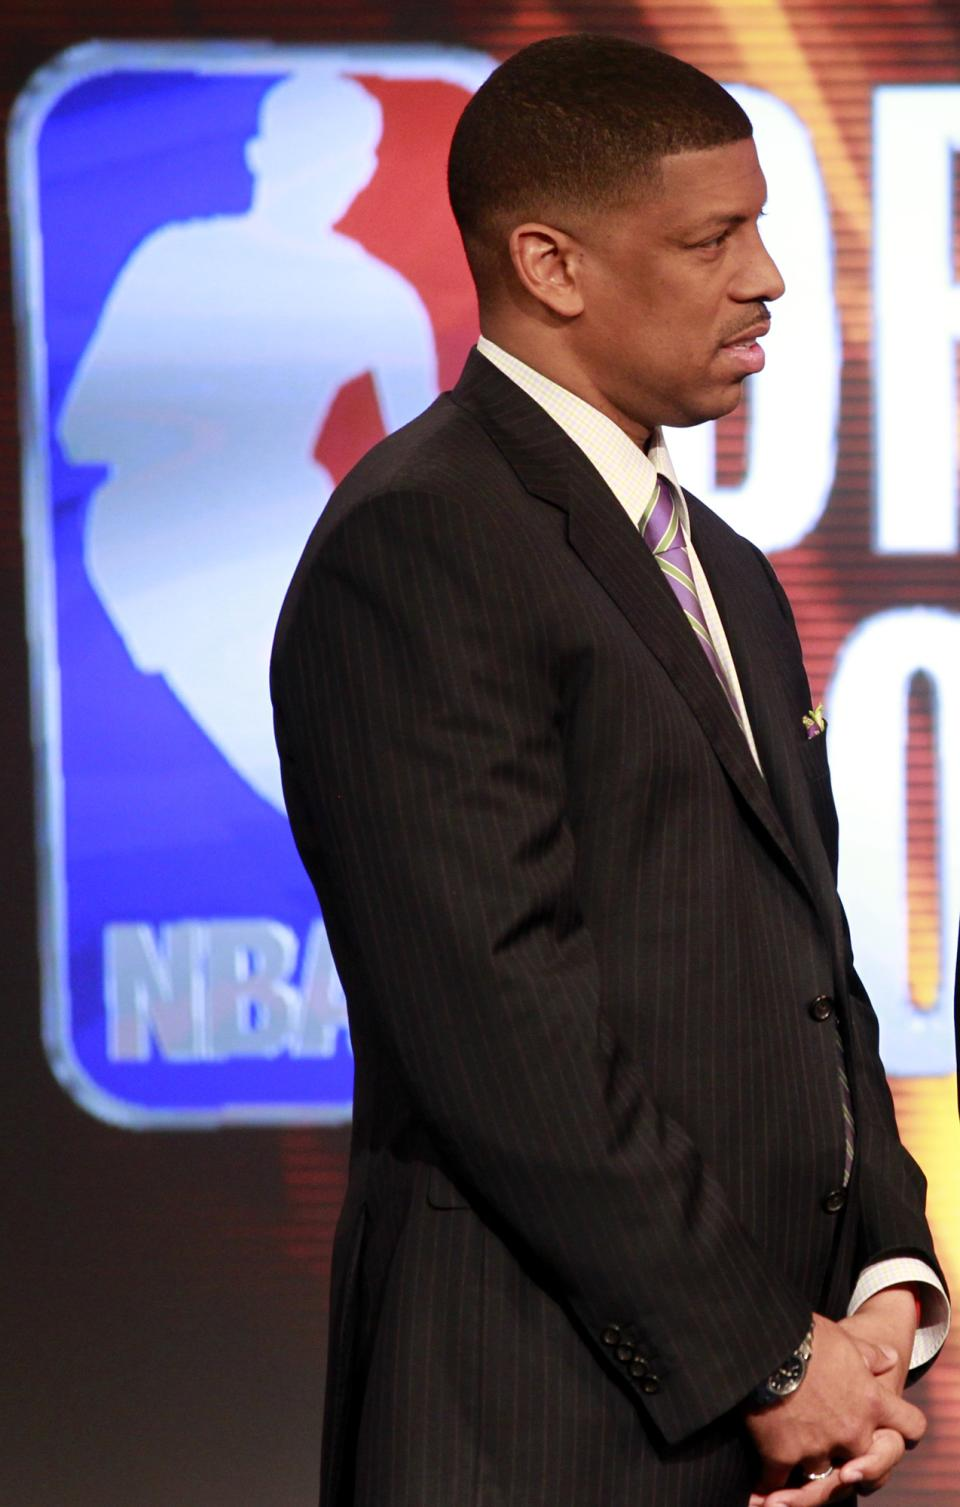 Former NBA player and current Mayor of Sacramento, Kevin Johnson, is seen in the NBA Entertainment studios during the 2011 NBA basketball draft lottery, Tuesday, May 17, 2011 in Secaucus, N.J. (AP Photo/Julio Cortez)